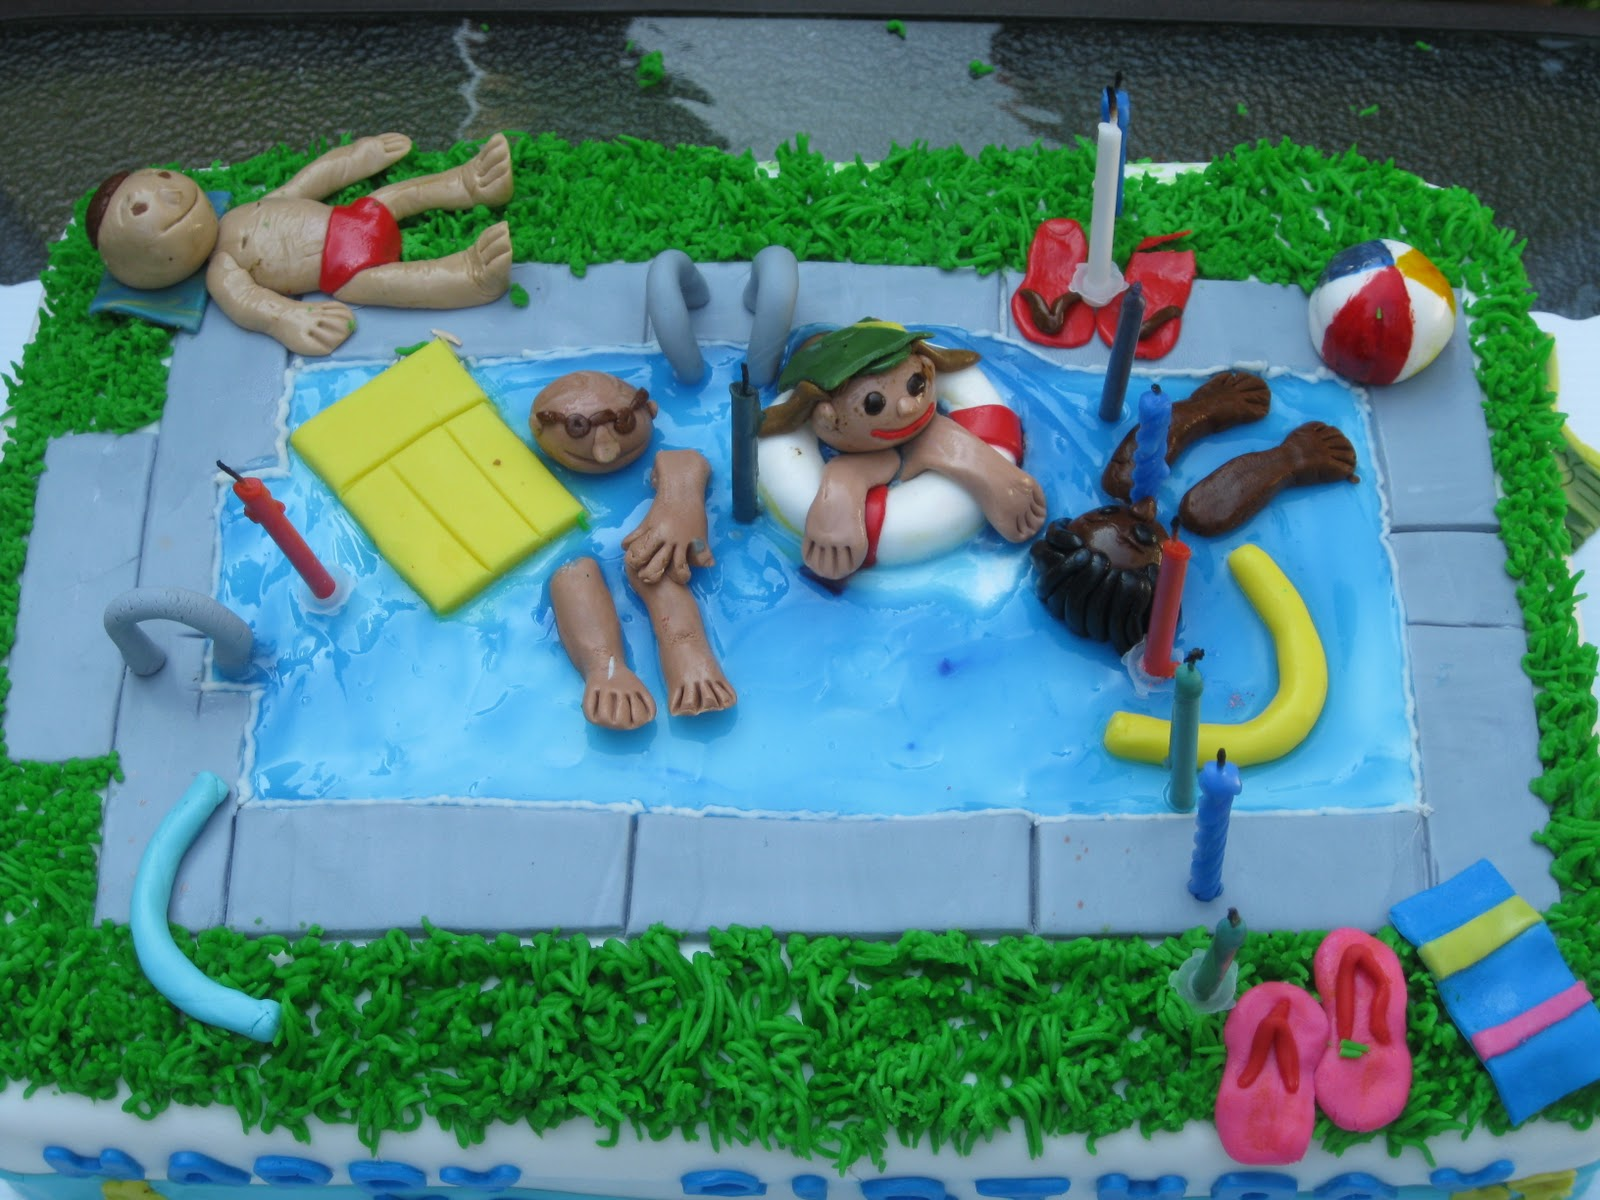 Pool Party Themes And Ideas stephanie Image Of Pool Party Themed Cakes